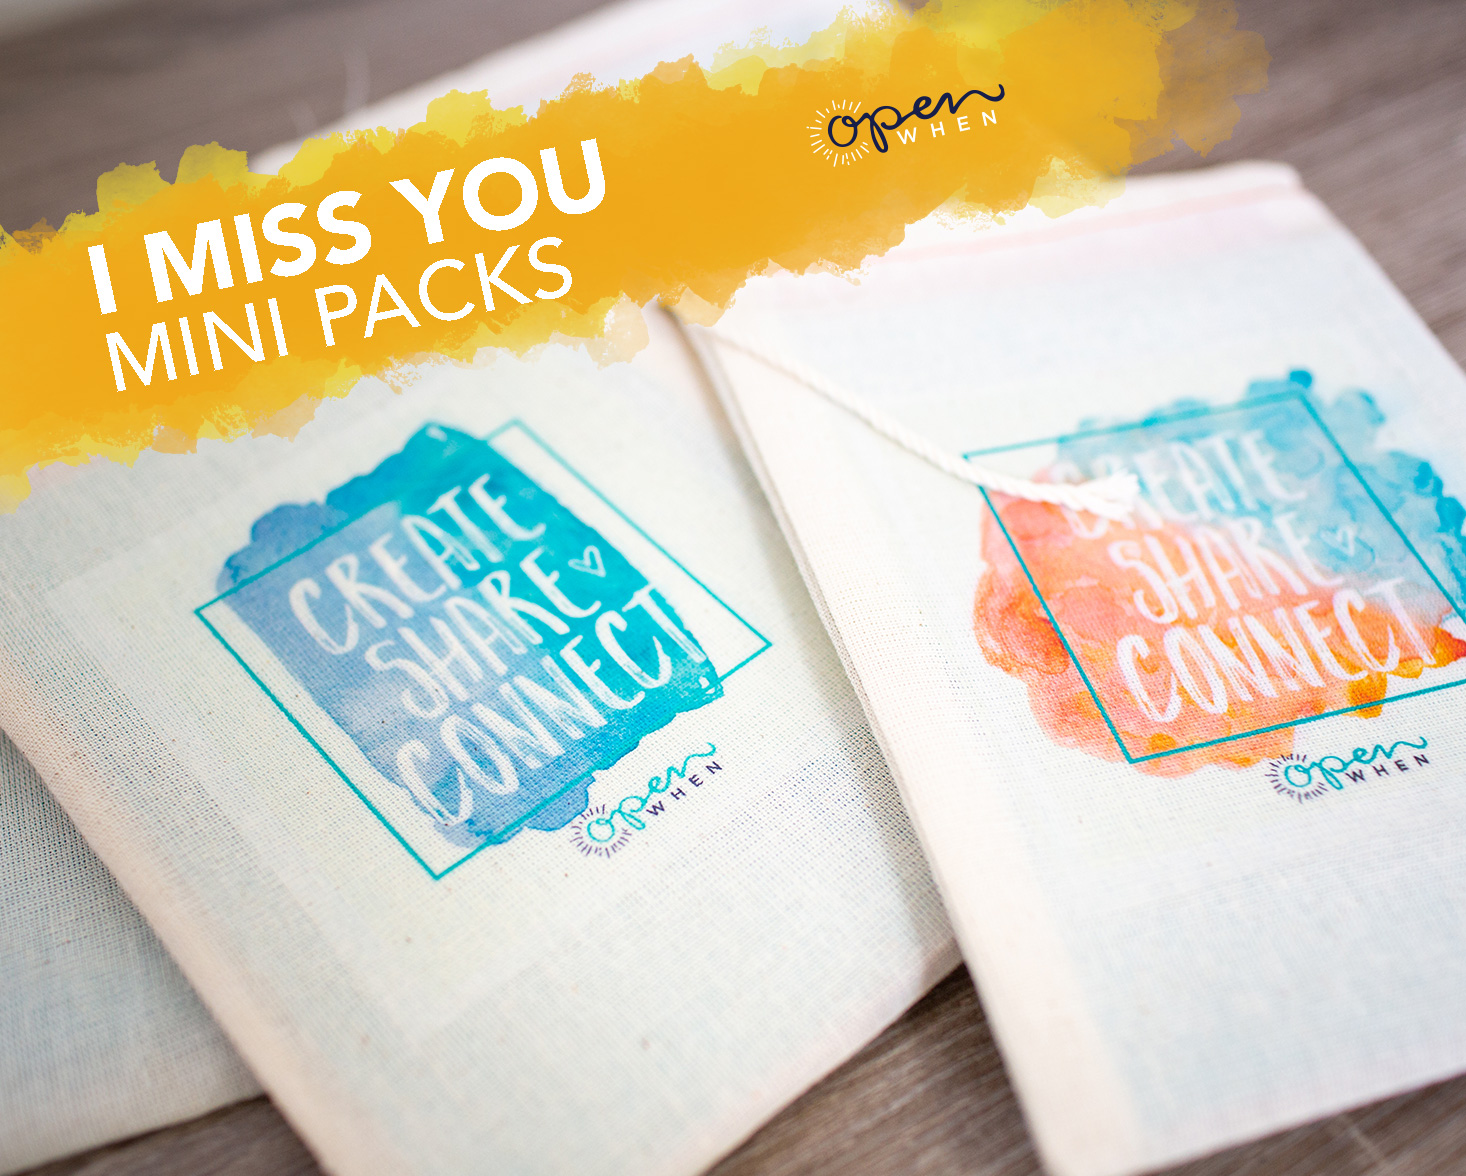 i miss you open when letters gift pack